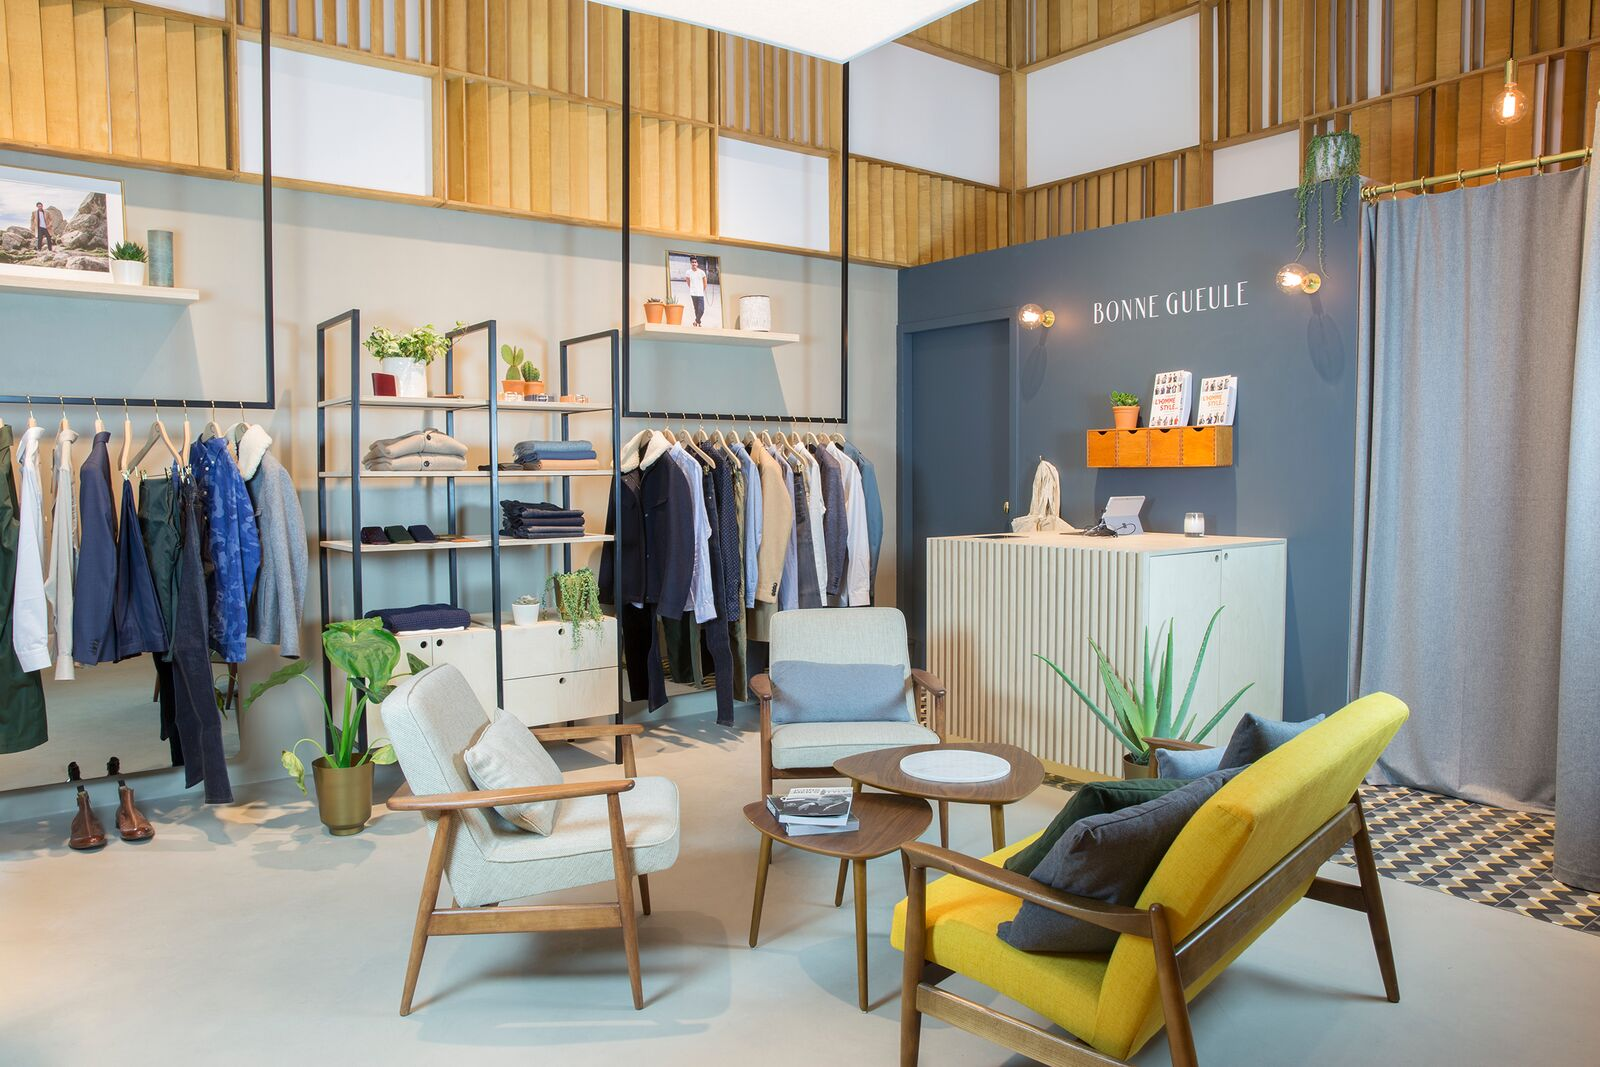 boutique bonnegueule lyon 2_preview